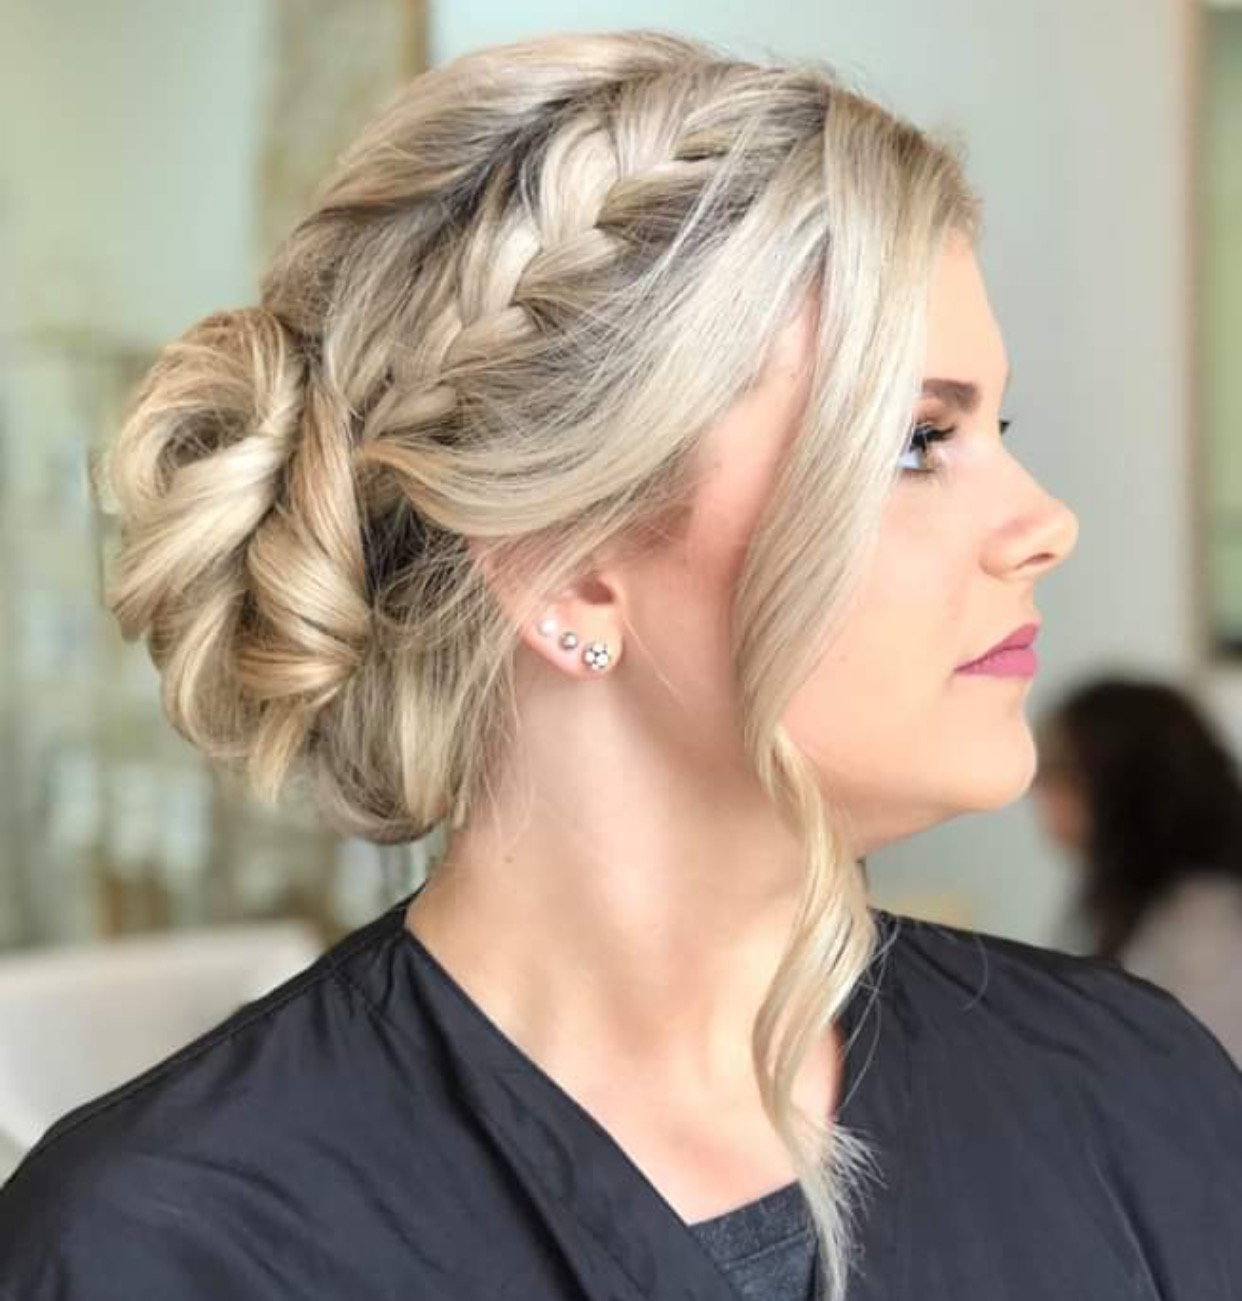 - 8. BRAIDED LADYFISHTAIL, FRENCH, DUTCH AND WATERFALL ARE ALL EXAMPLES OF BRAIDS THAT CAN BE INCORPORATED IN A BRIDAL LOOK....BRIDE: MARY CORINNE PATTERSONHAIR STYLIST: EMILY KLEIN SMITH